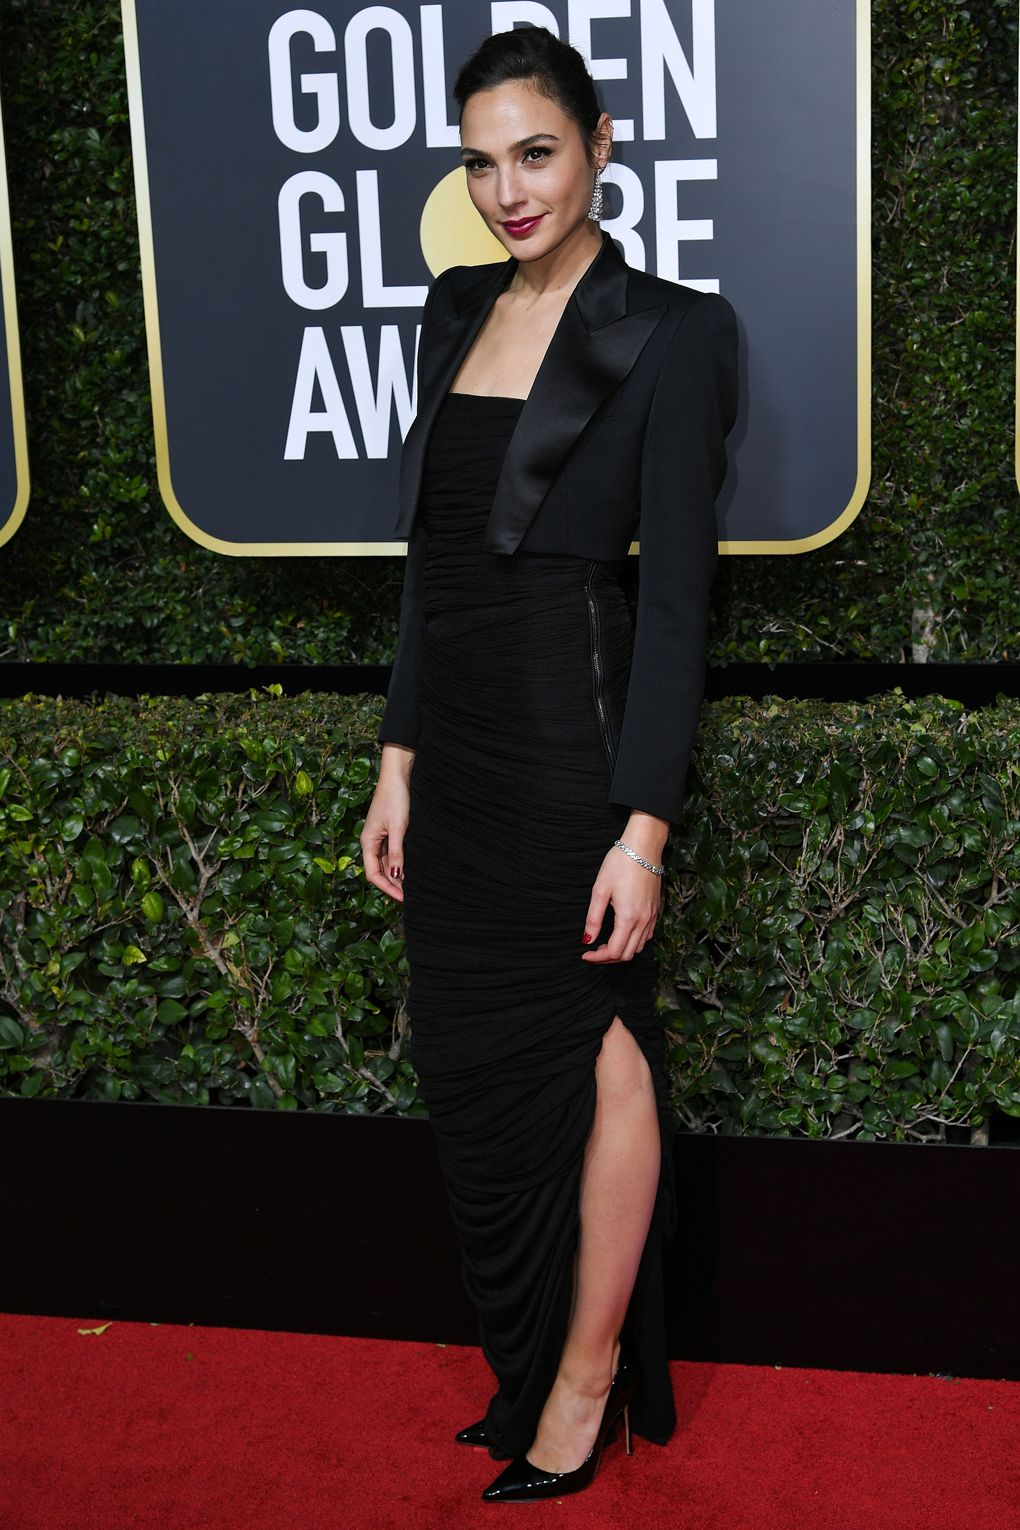 Golden Globes 2018 Red Carpet - Gal Gadot in Tom Ford and Tiffany & Co. jewelry - Photo credit Rex/Shutterstock - women empowerment - black dresses golden globes 2018 - times up